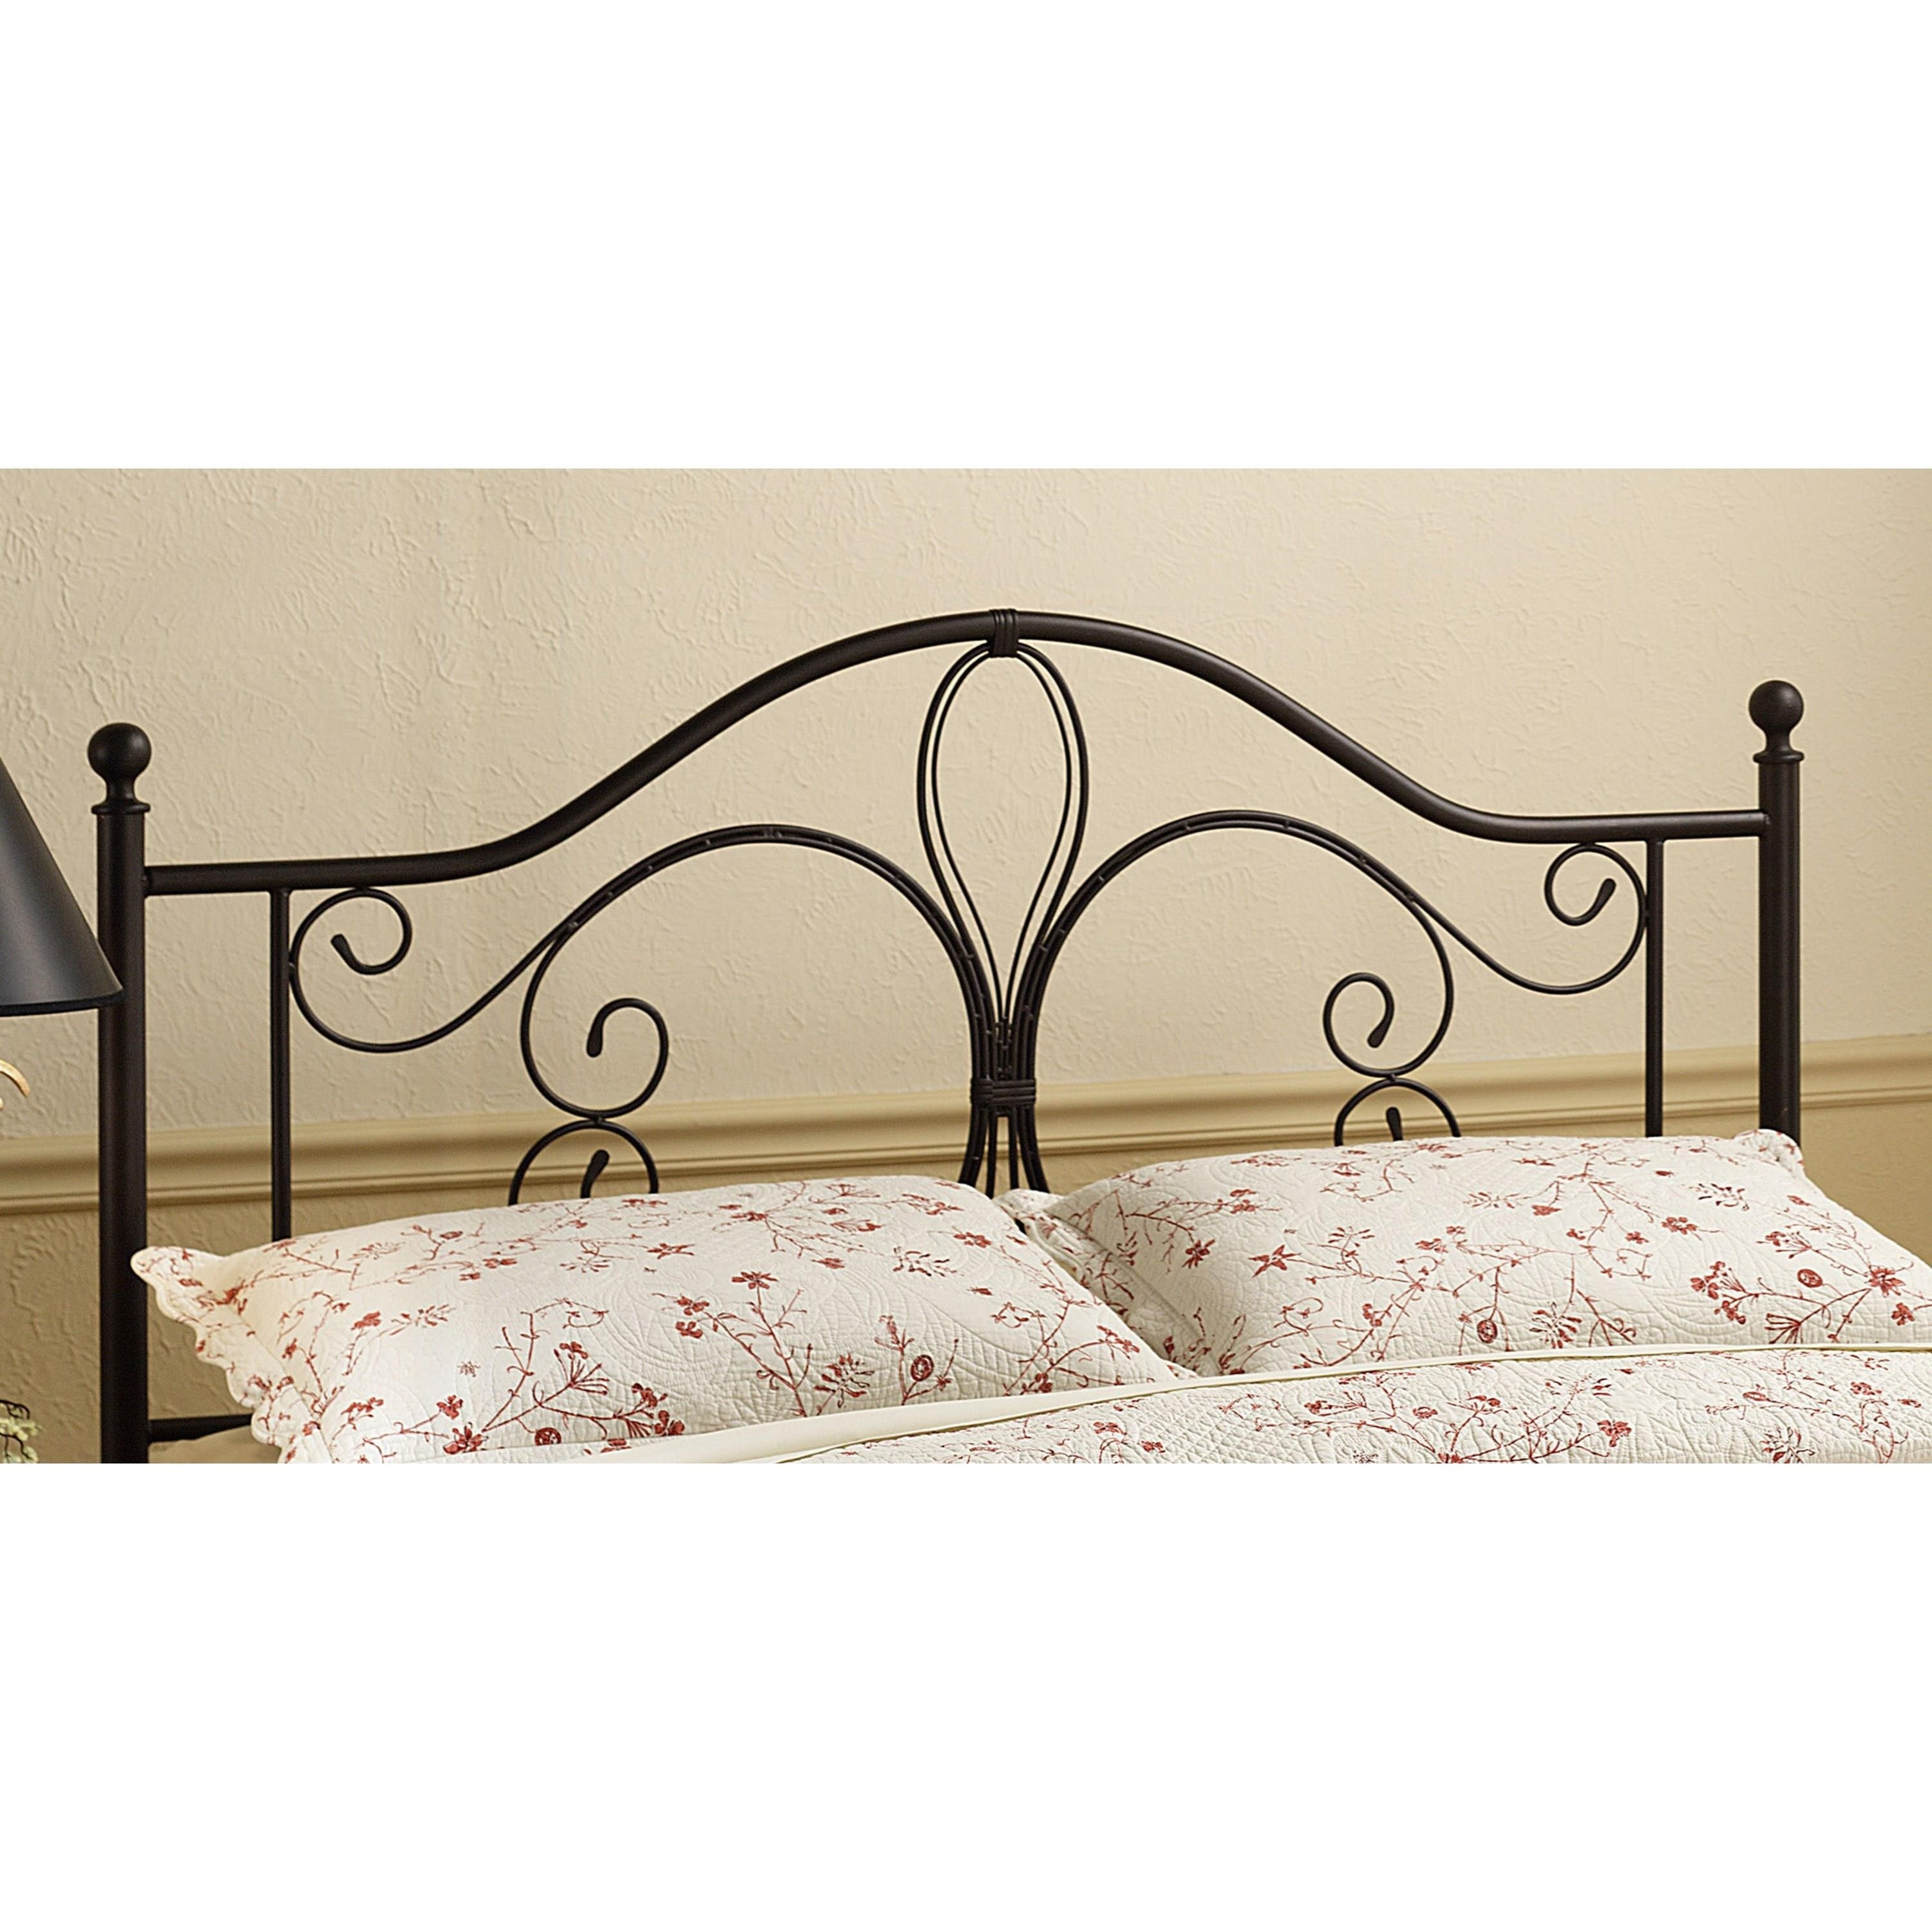 Hillsdale Metal Beds Full/Queen Milwaukee Headboard - Item Number: 1014HFQR